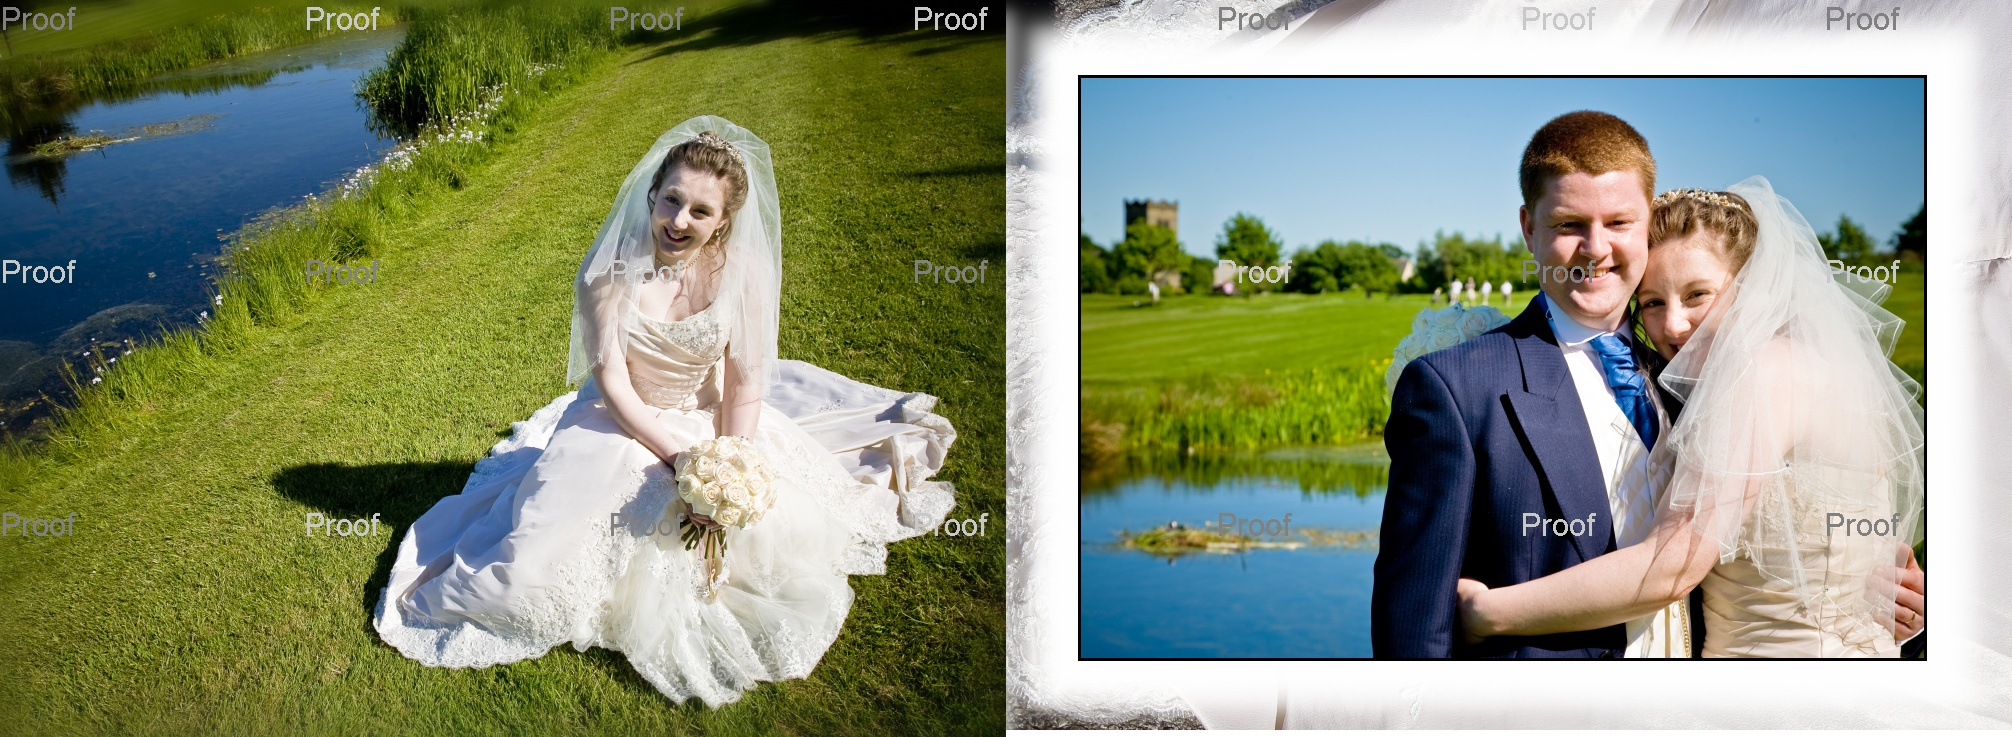 pages 38-39 wedding storybook album with bride and groom at Drighlington Golf Club, West Yorkshire